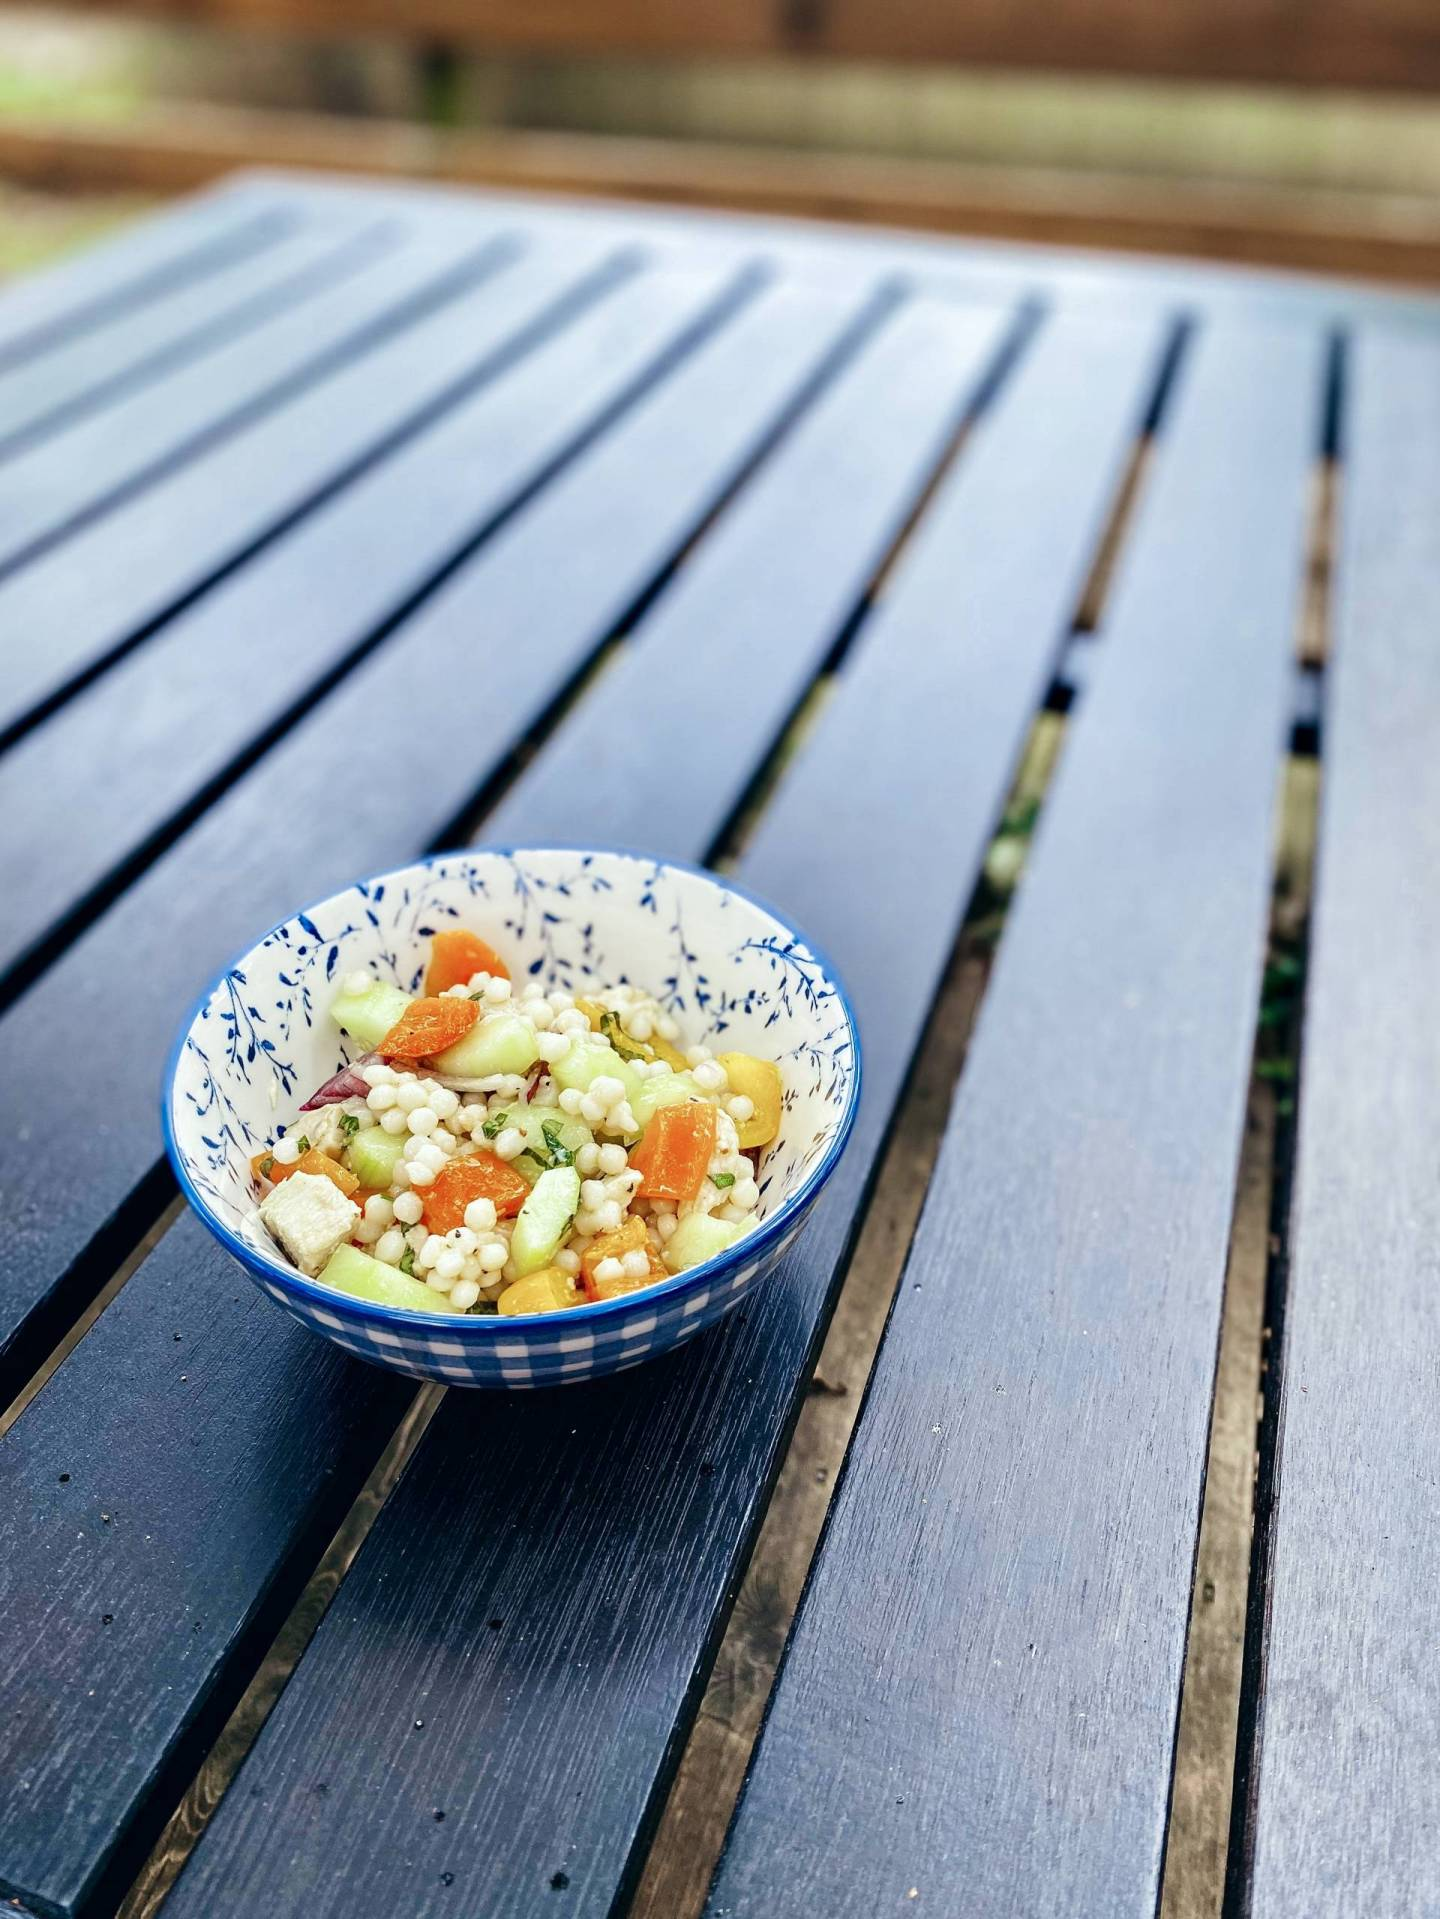 This cous cous salad is light and fresh, perfect for Summer! Plus, it can be prepped ahead and portioned out making it perfect for meal prep. Lunches for the week ready to grab and go!